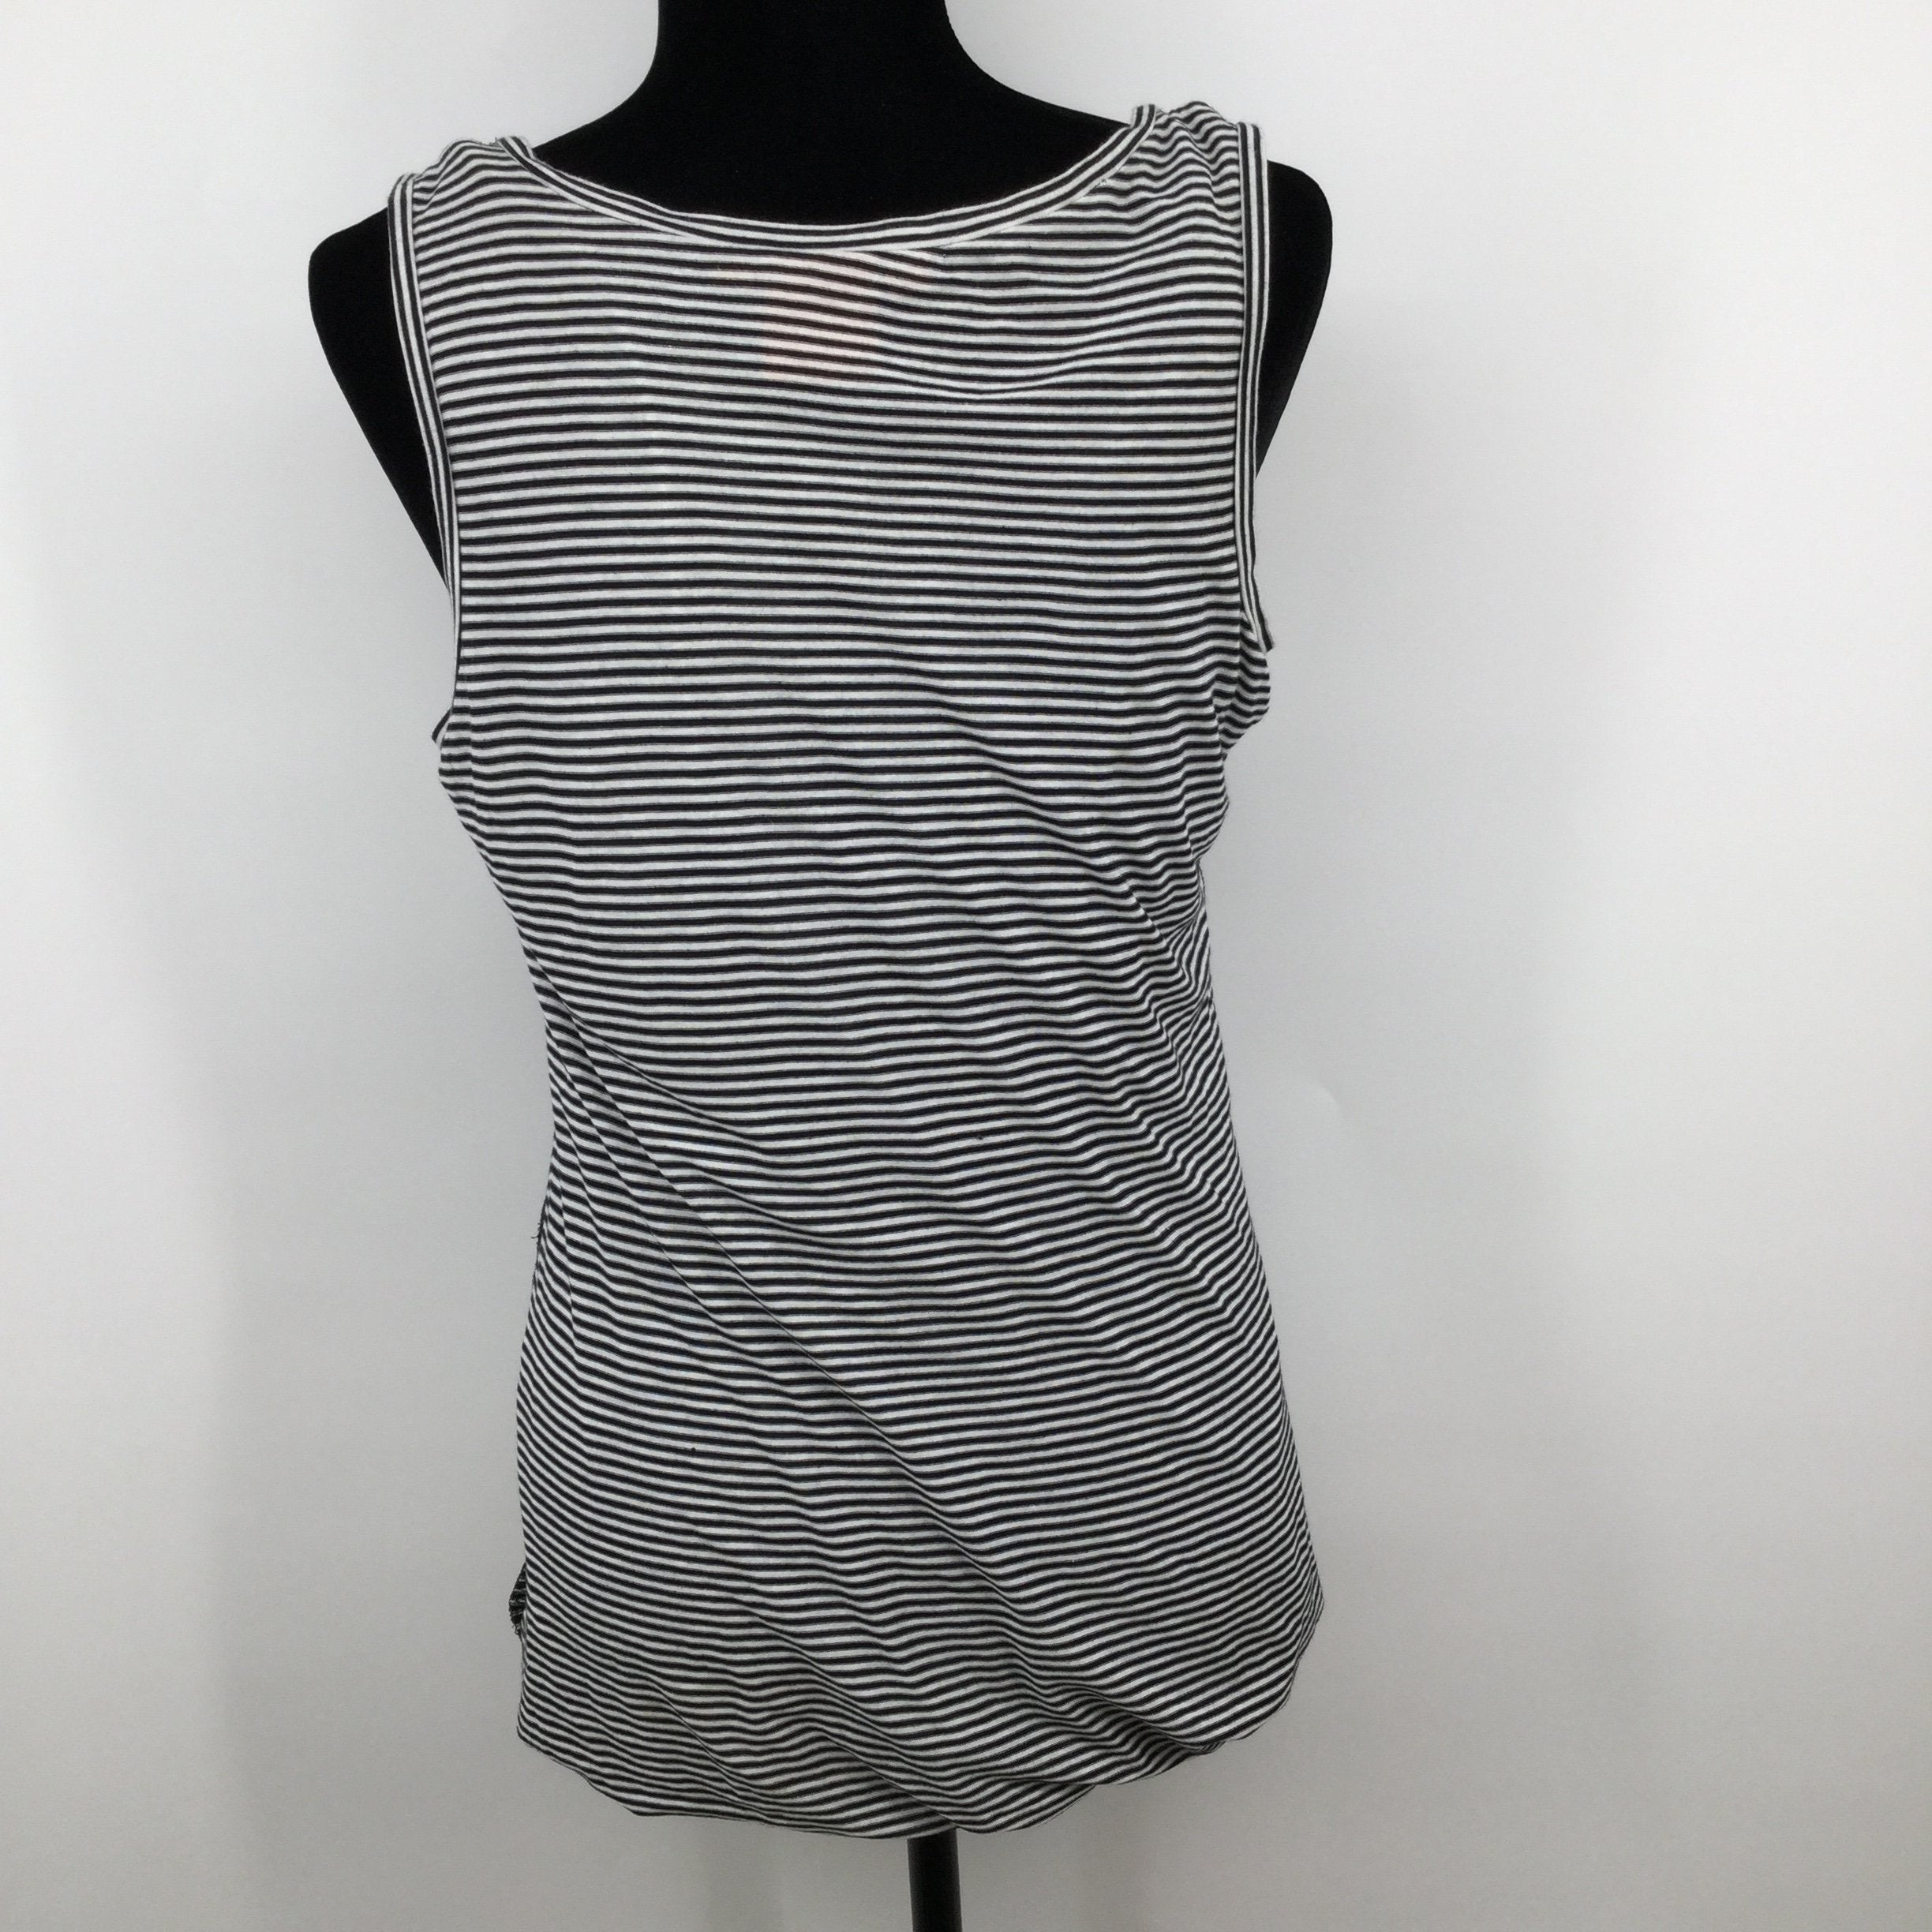 Tory Burch Sleeveless Top Size Small - <P>PAIR UP YOUR SUMMER DENIM WITH THIS CUTE BASIC STRIPED TORY BURCH SLEEVELESS TOP.</P>